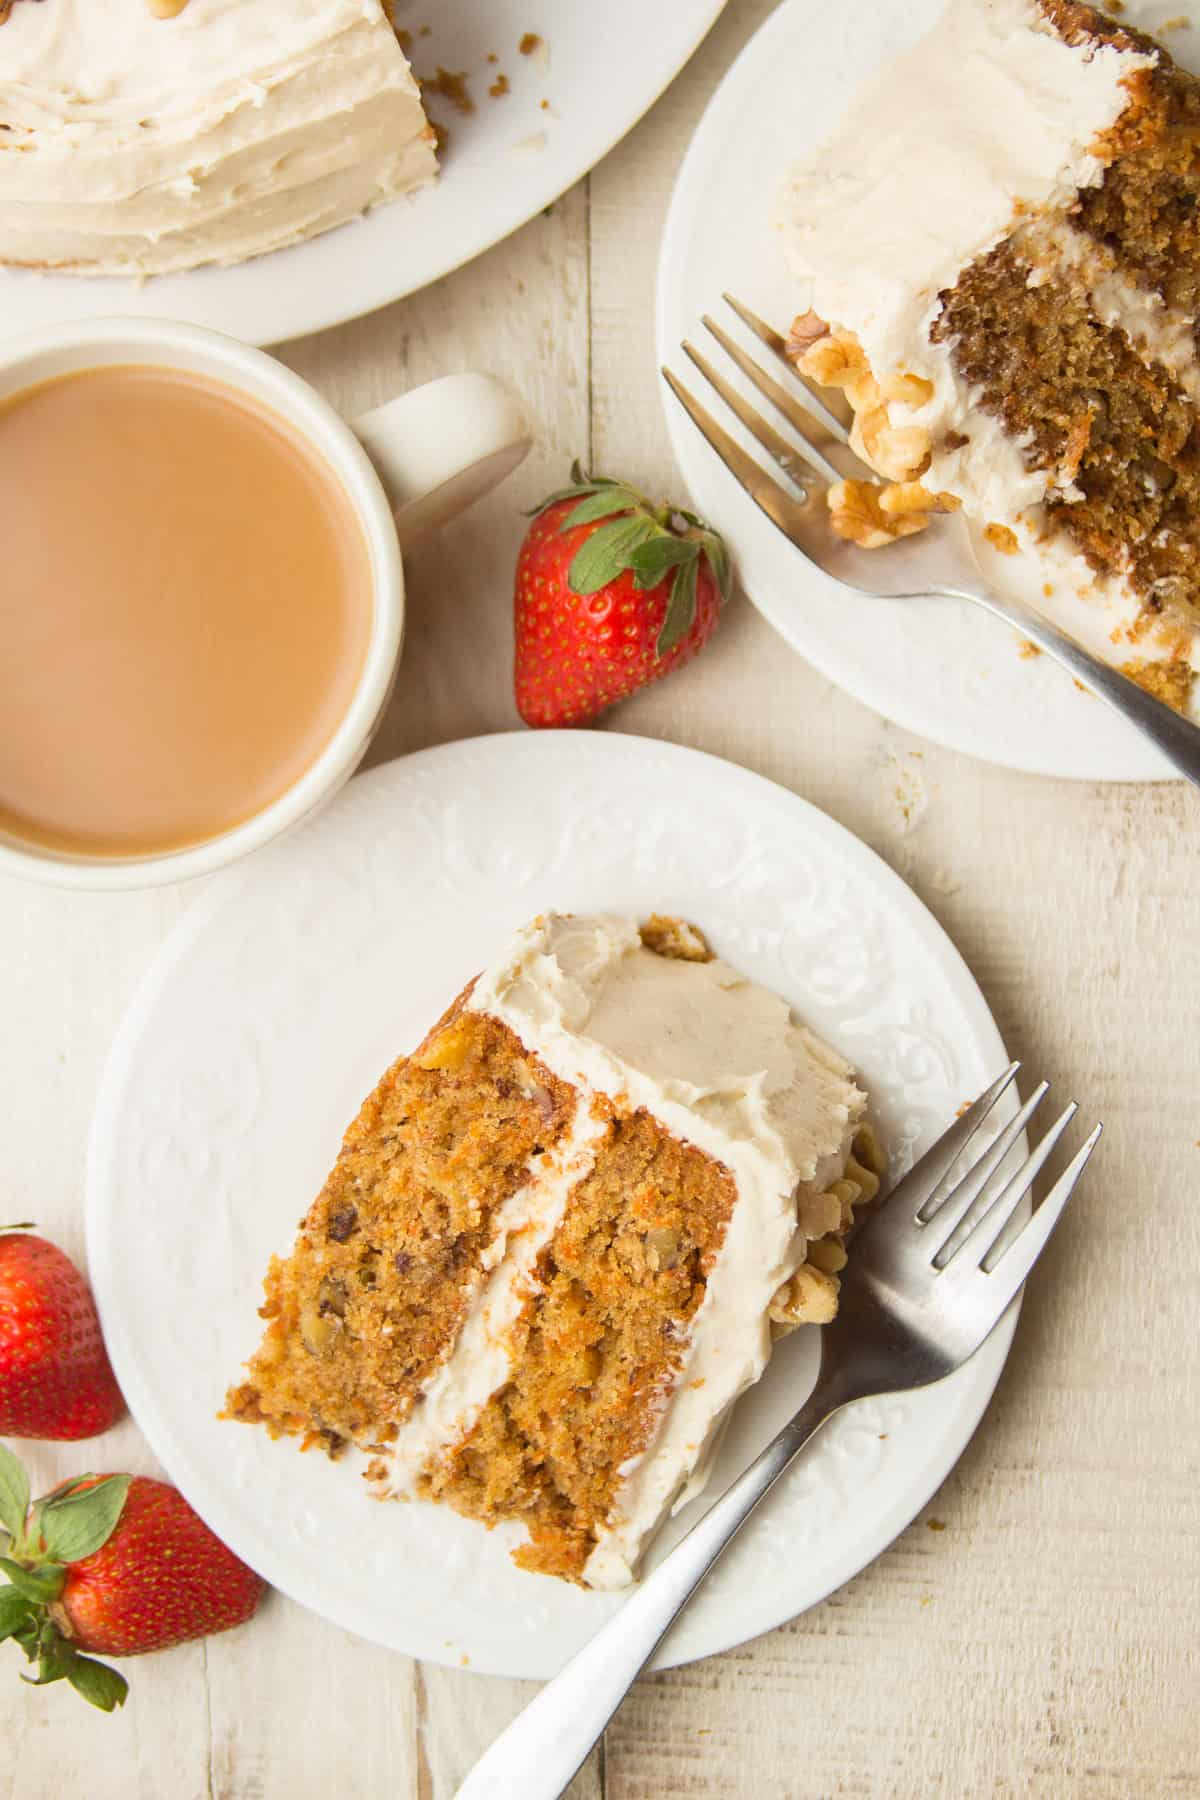 Table Set with Sliced Vegan Carrot Cake, Two Slices on Plates, and Coffee Cup